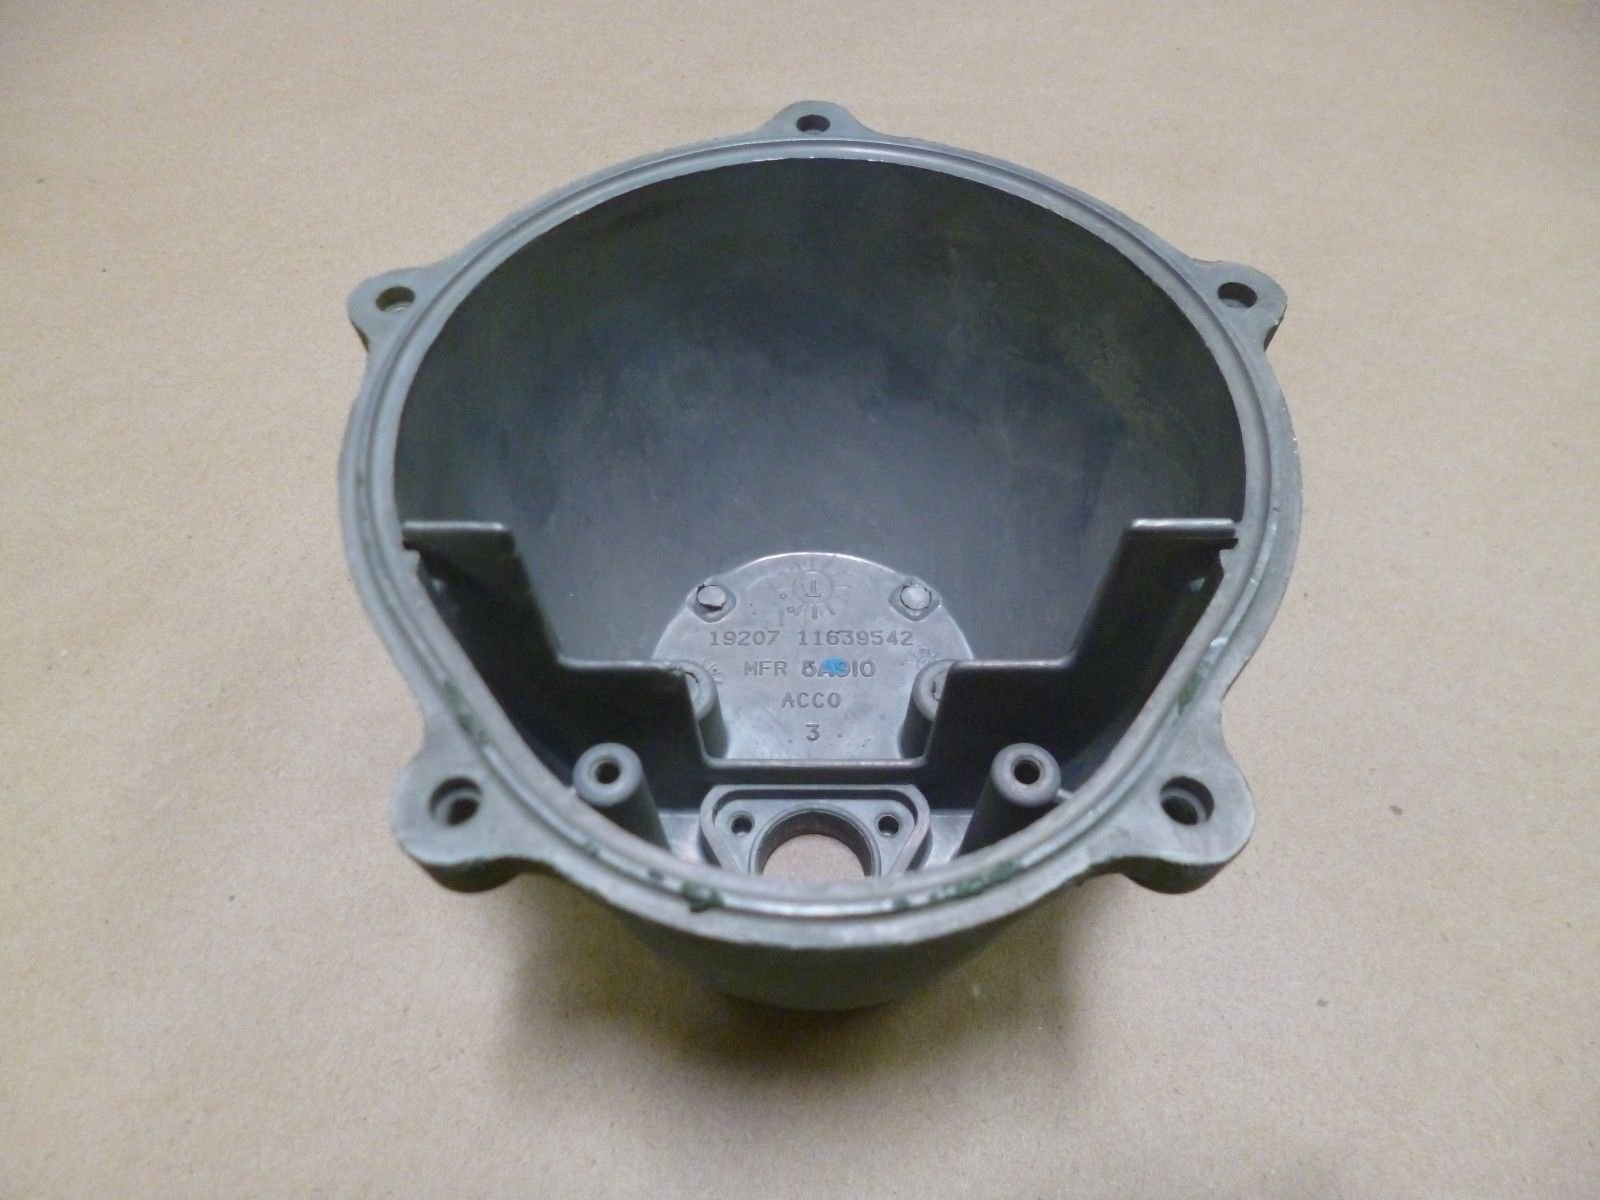 11639542 Military Excavator HMMH Front Light Lens HOUSING Aluminum 6220011547699